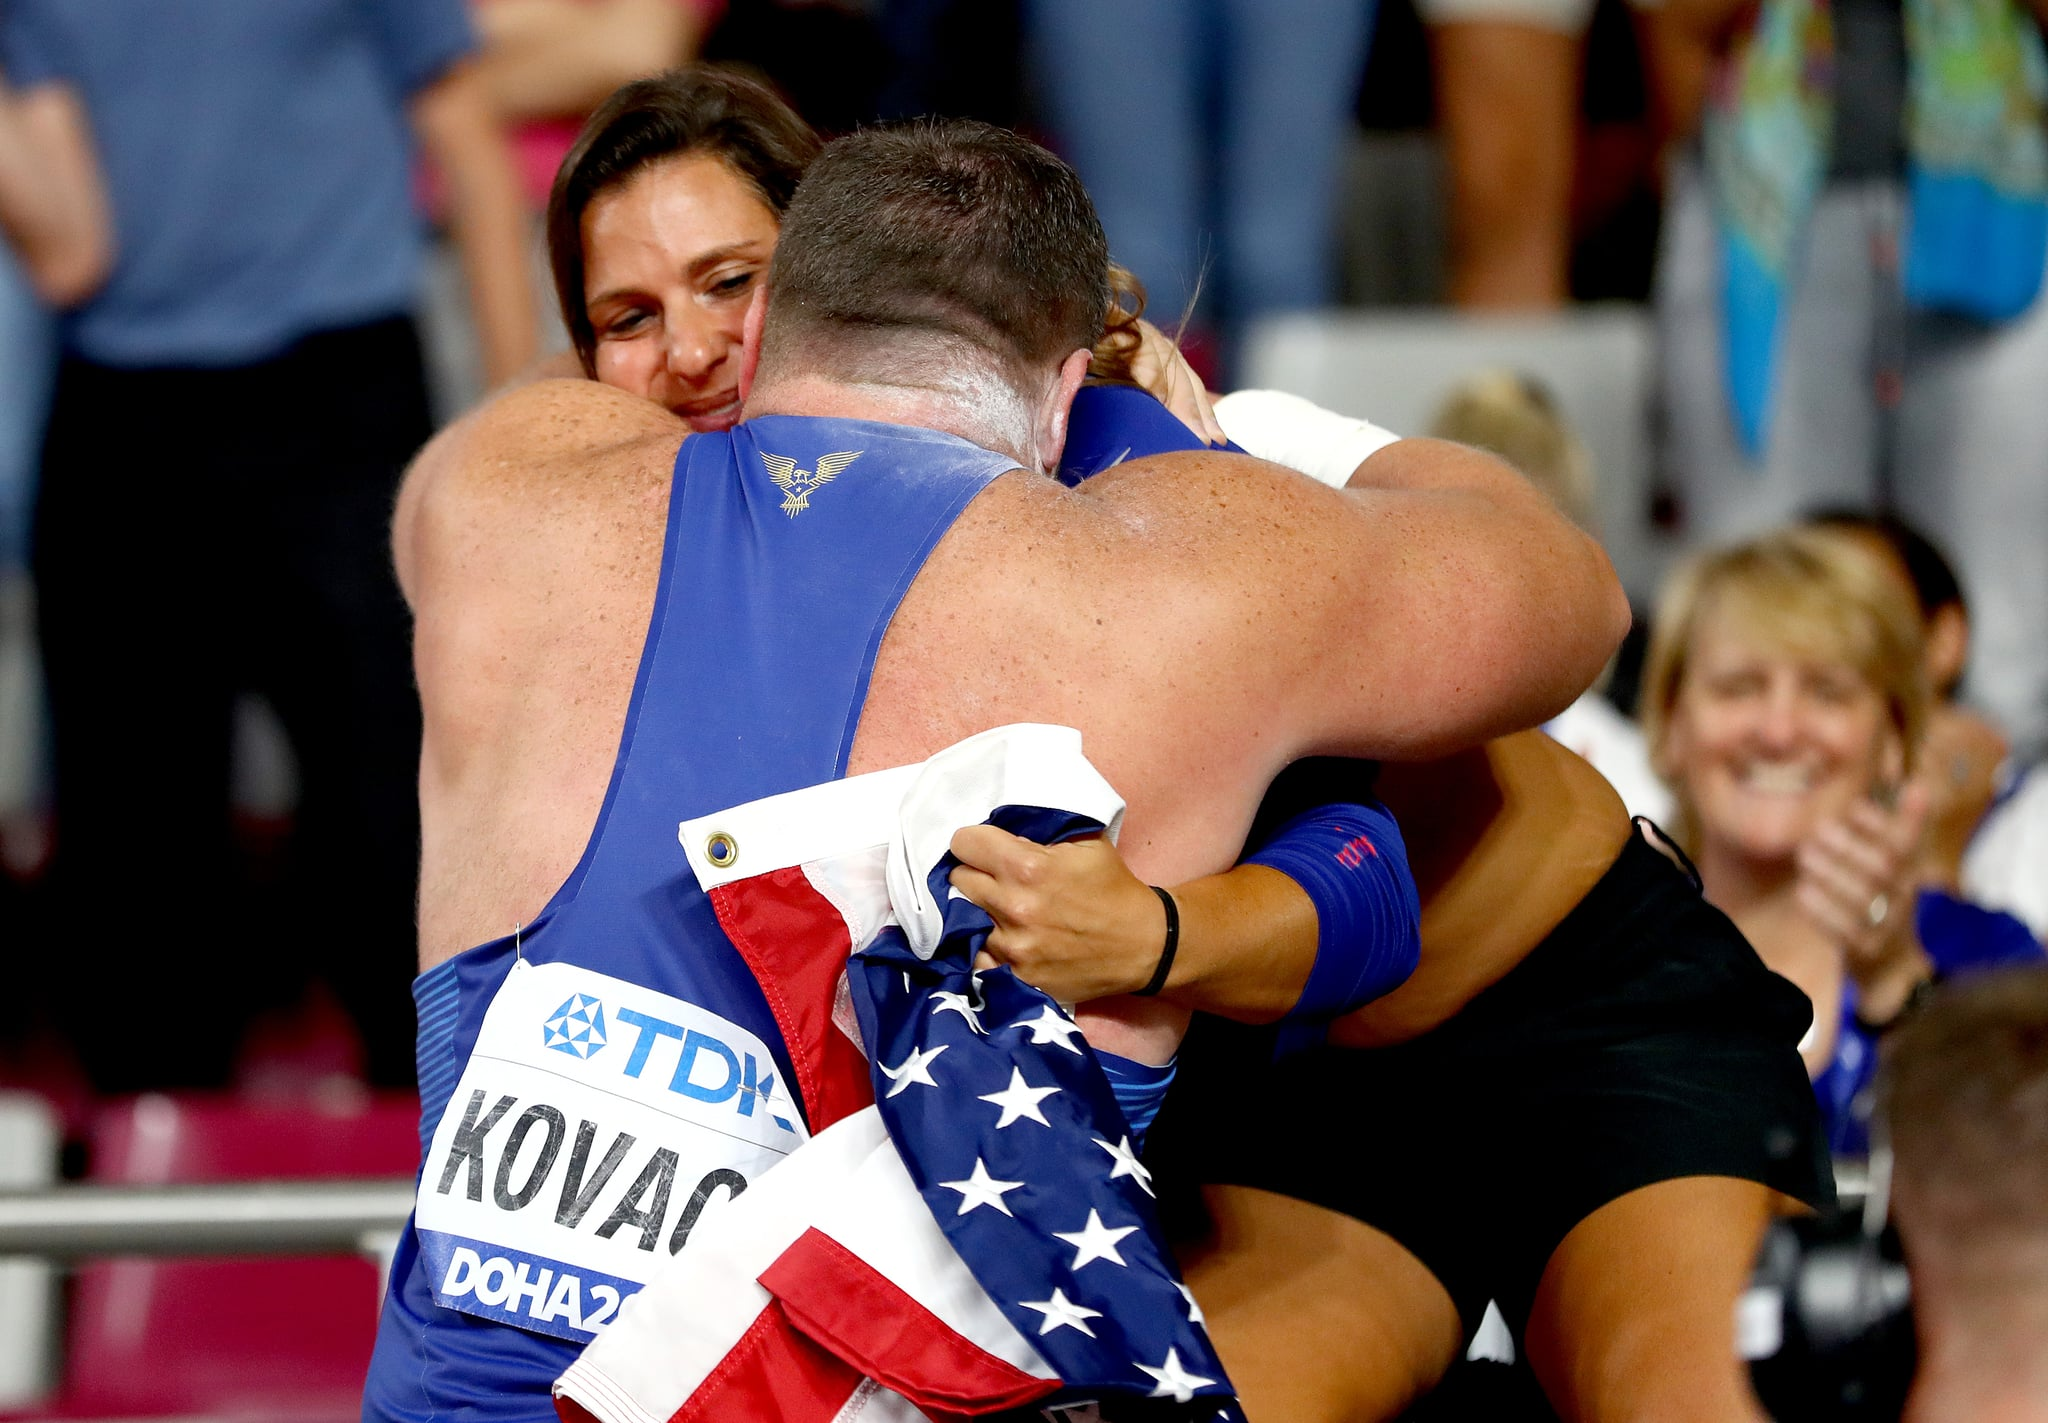 DOHA, QATAR - OCTOBER 05:  Joe Kovacs, gold, of the United States celebrates his championship record in the Men's Shot Put final during day nine of 17th IAAF World Athletics Championships Doha 2019 at Khalifa International Stadium on October 05, 2019 in Doha, Qatar. (Photo by Michael Steele/Getty Images)